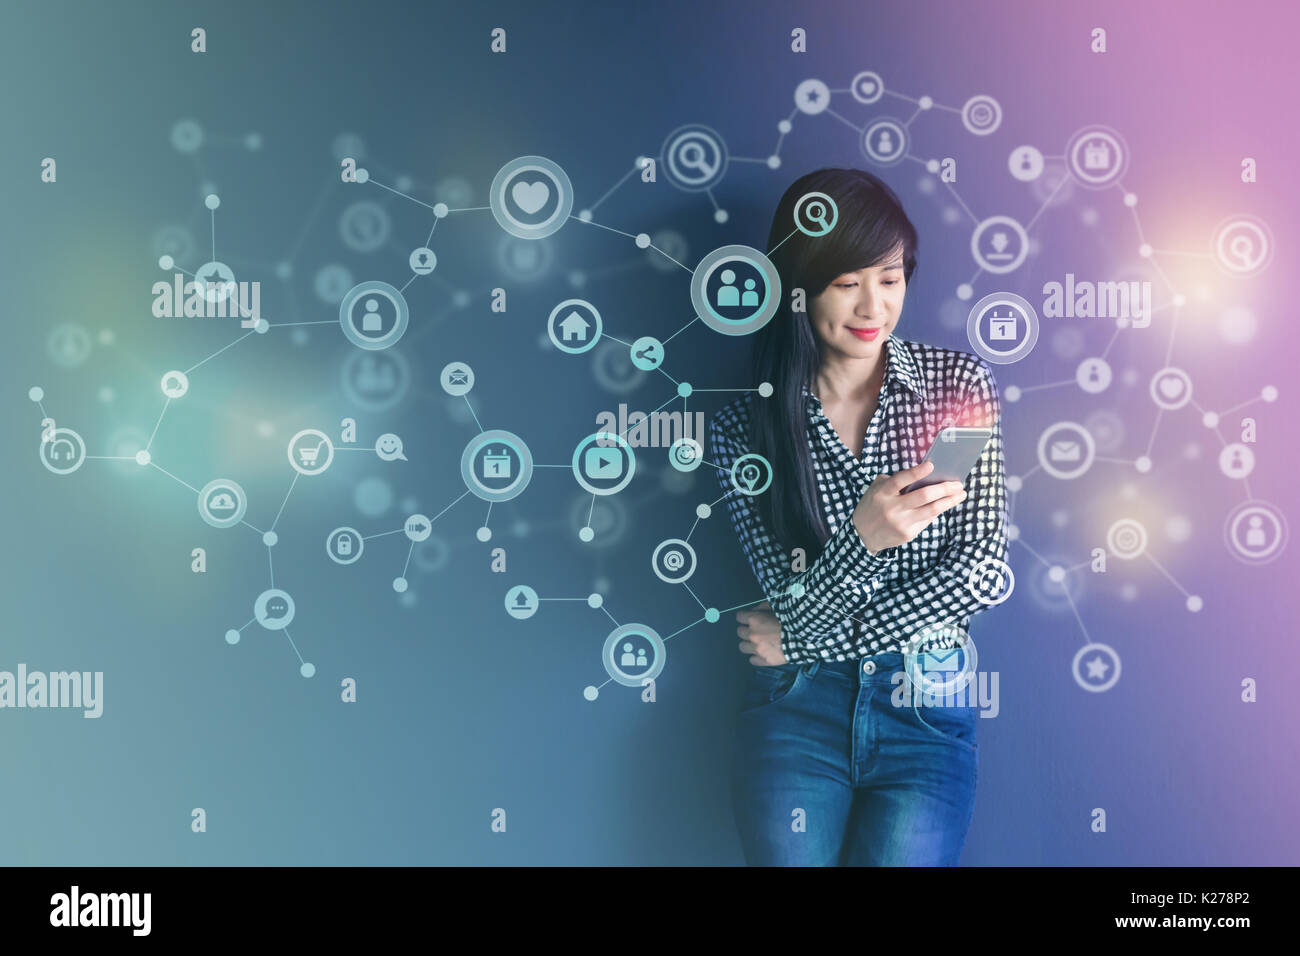 Communication Technology on daily life via Smart Phone Concept, Social media or Network system present over Soft focus of Happy Woman standing and enj - Stock Image